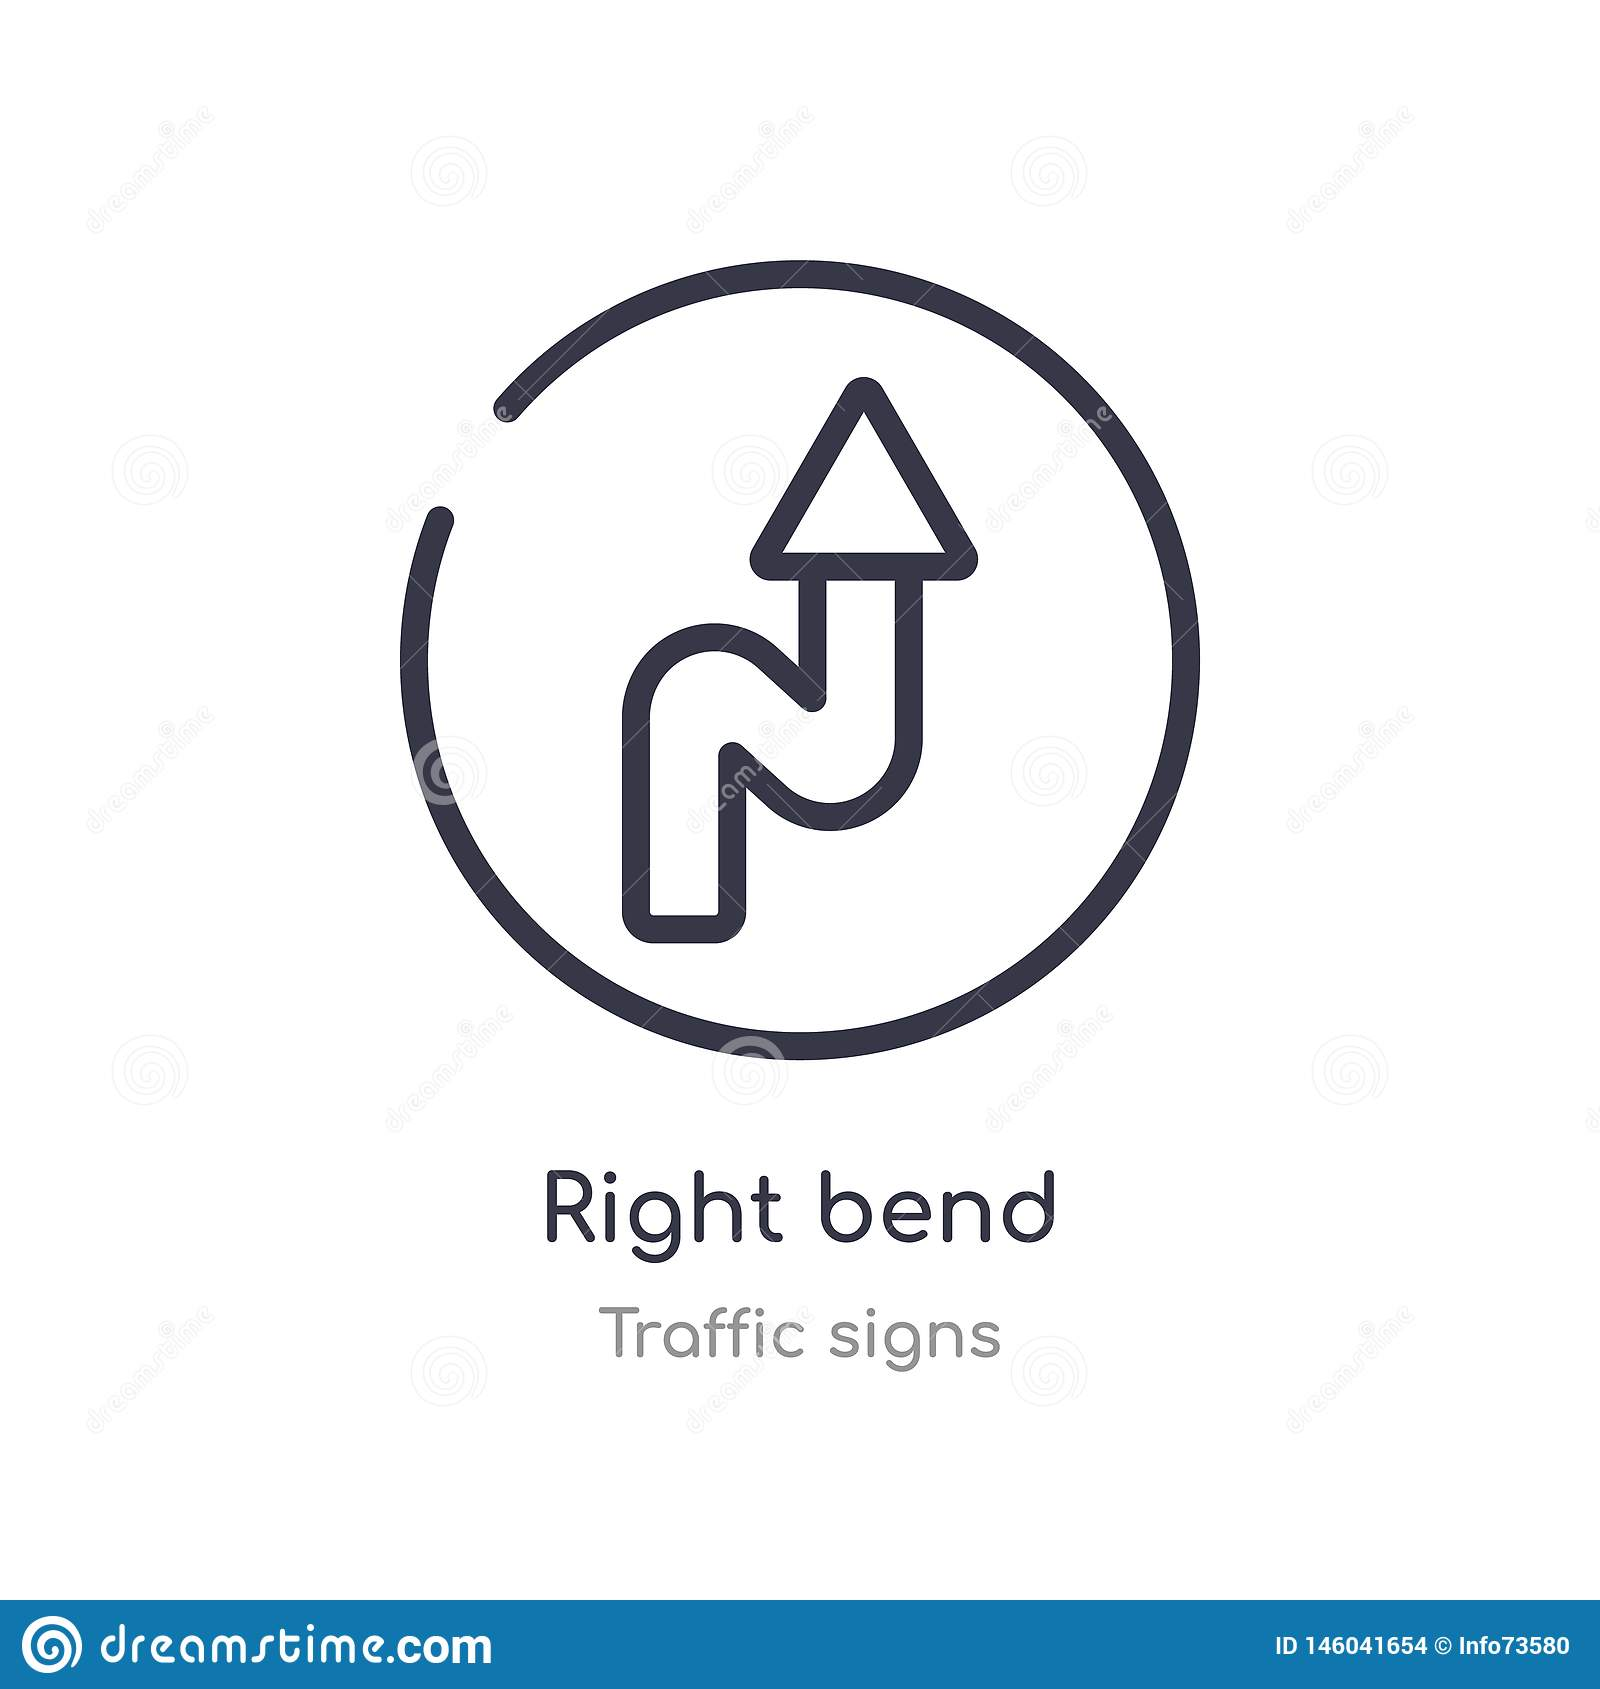 right bend outline icon. isolated line vector illustration from traffic signs collection. editable thin stroke right bend icon on